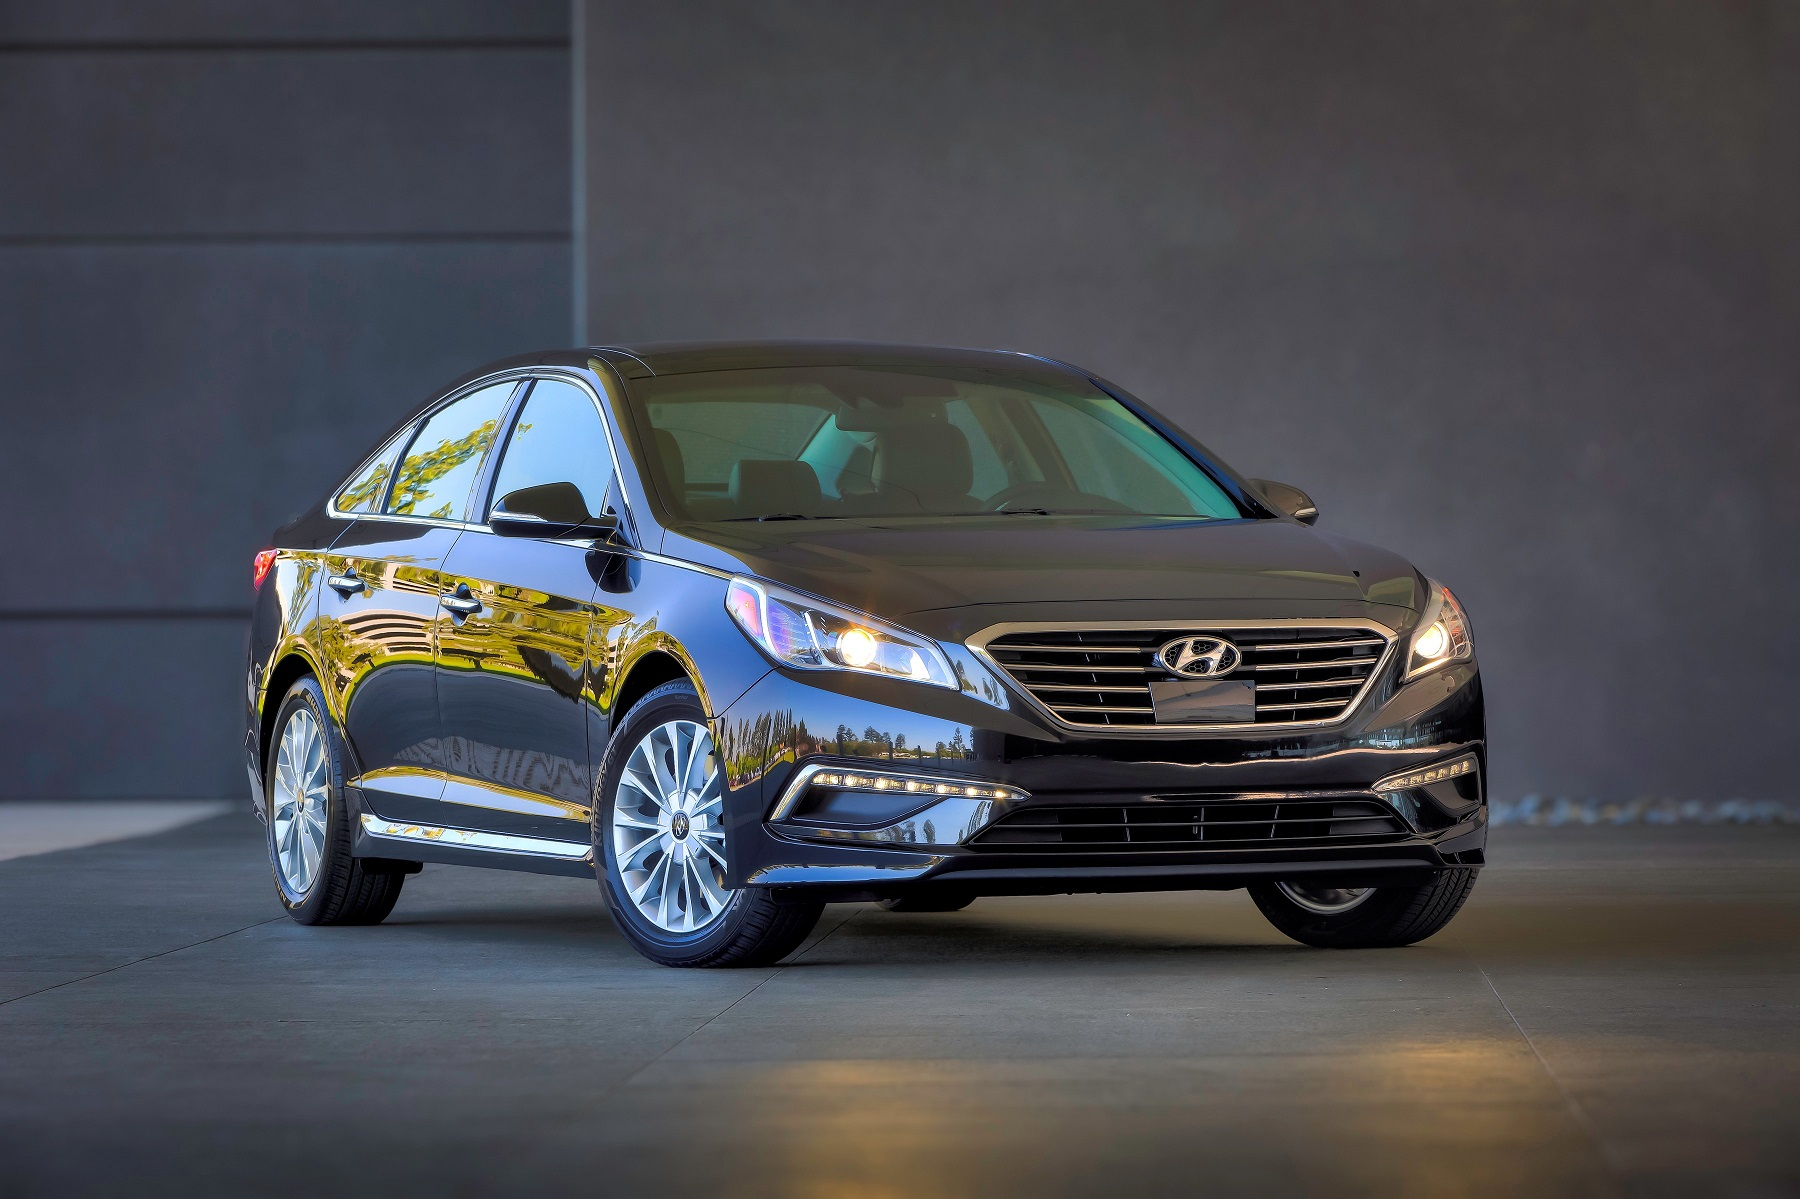 begins to in segment articles volume hyundai sport with on a se msrp wheels raising be for expects engine limited the followed at trim its midsize by new sonata pricing liter model bar